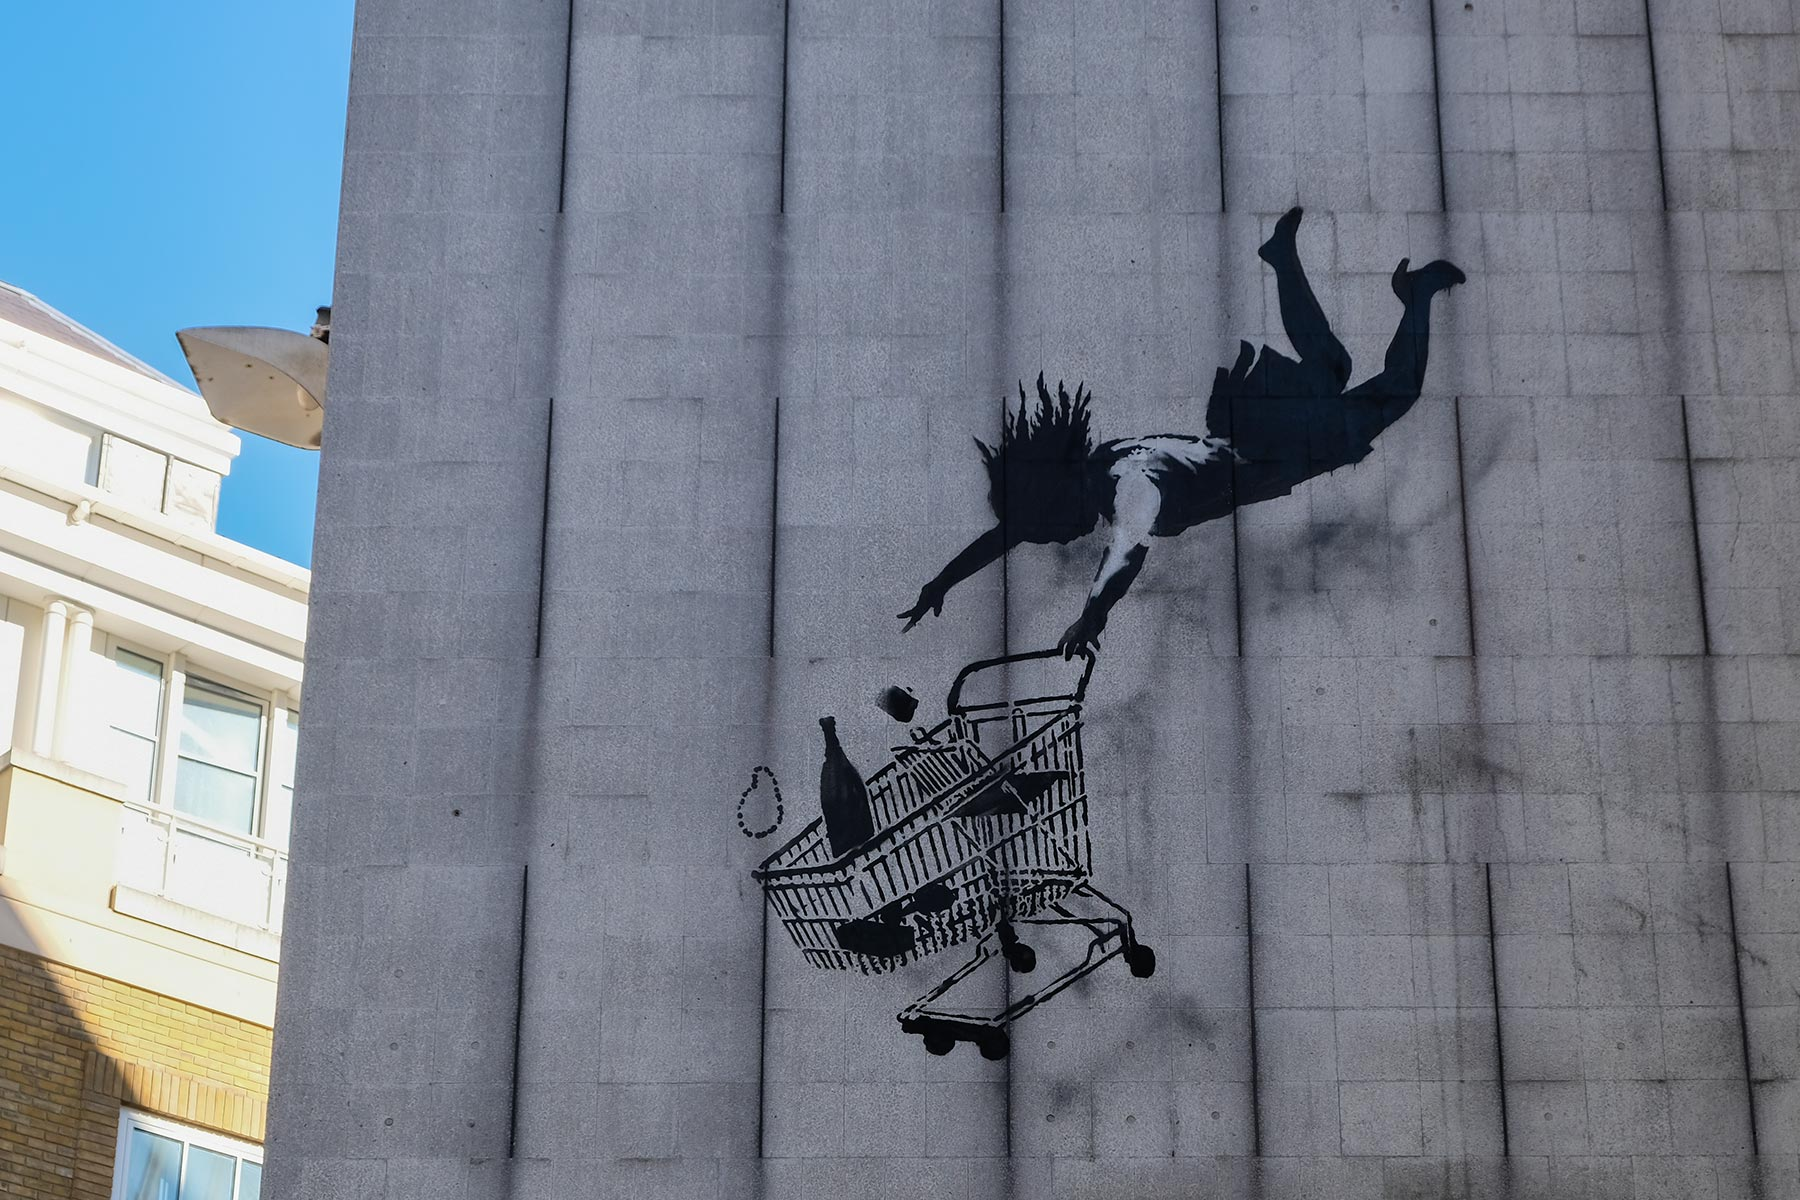 Street Art London - Banksy 'Shop Until You Drop' - Bruton Lane, Mayfair